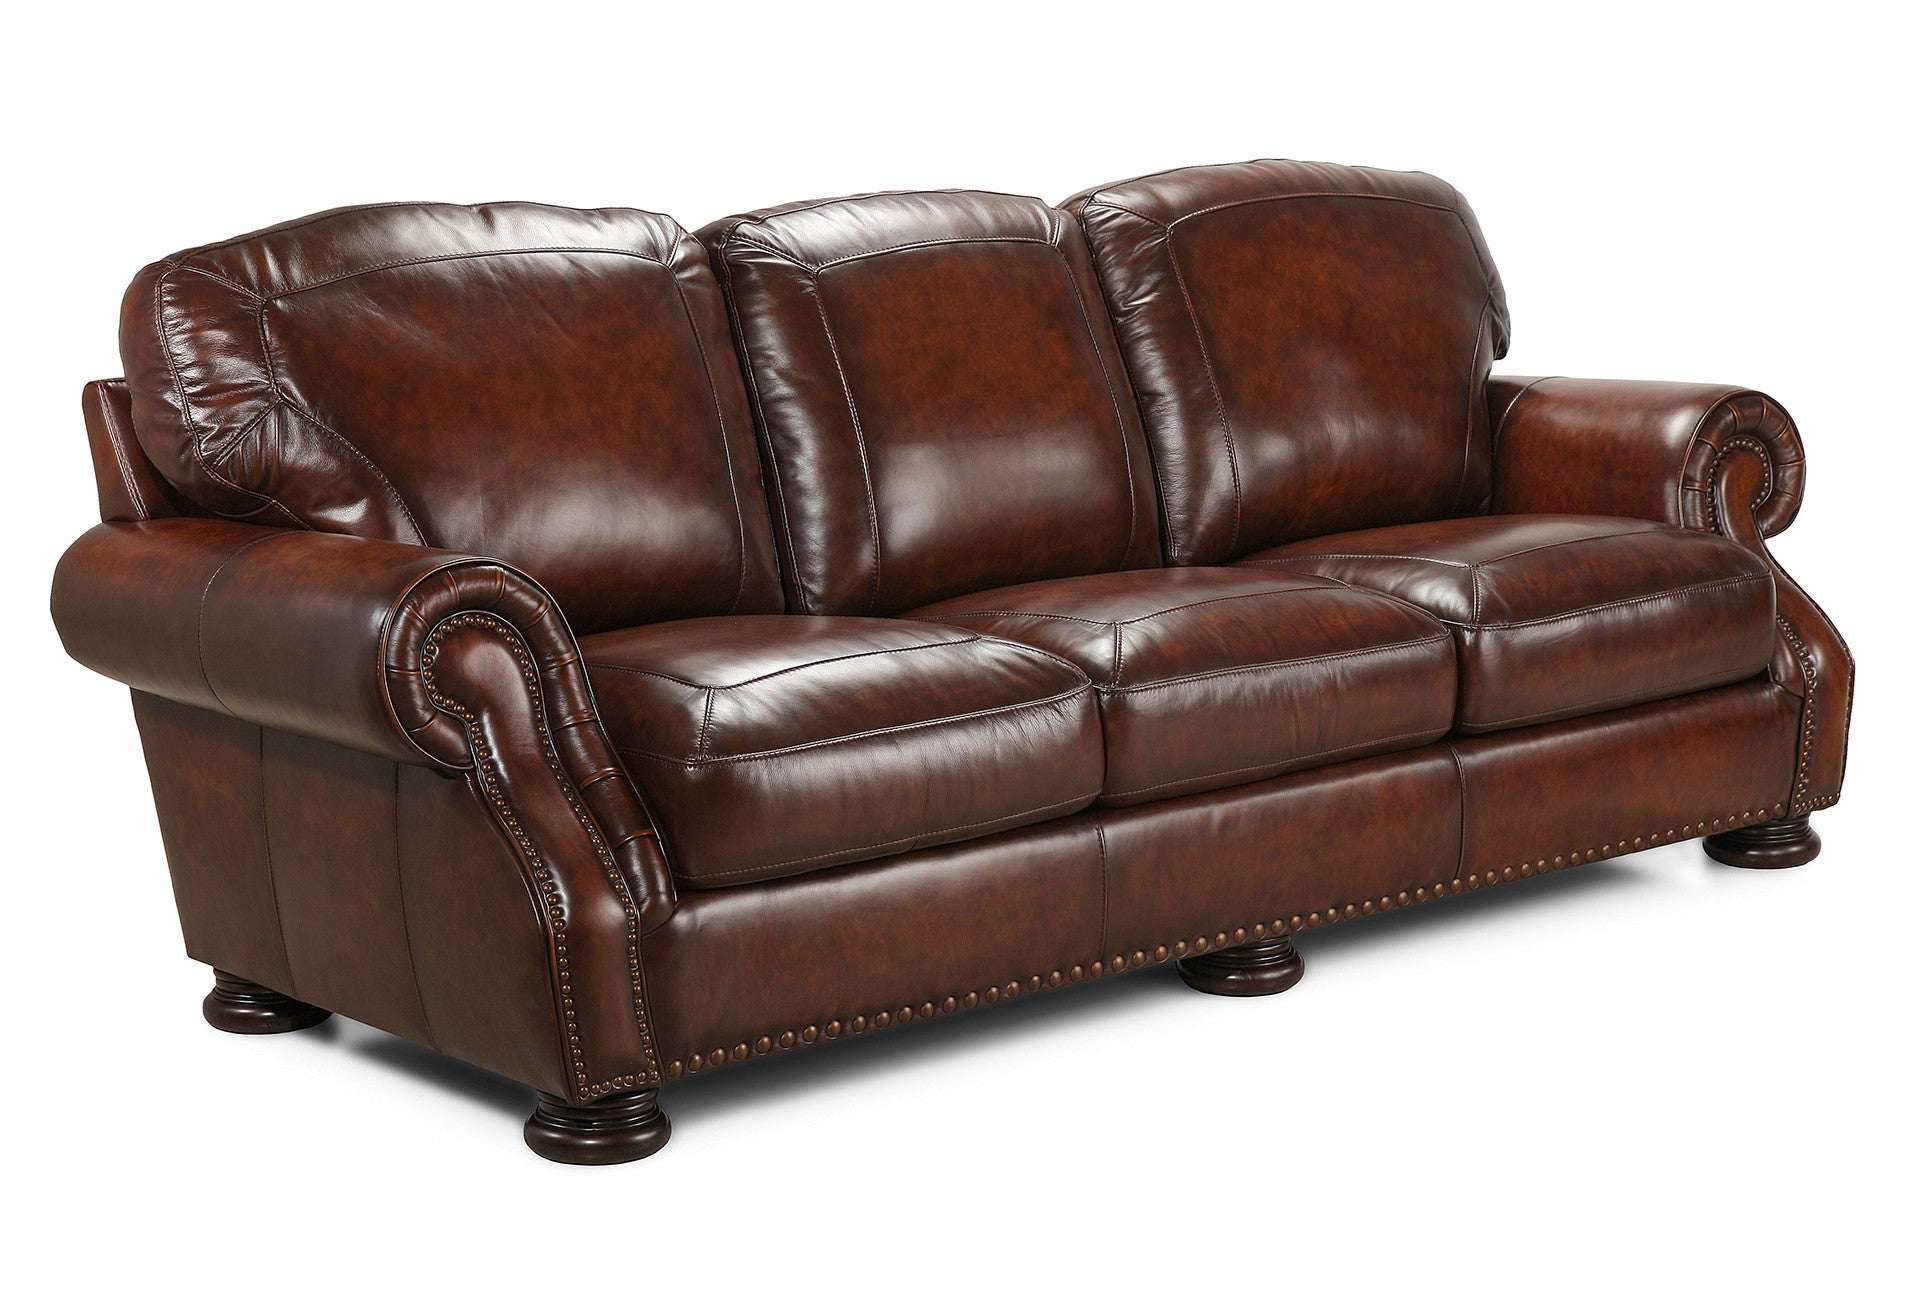 Loveseats ~ Leather Loveseat Sleeper Sofa Gallery Fancy Couch Bed ...